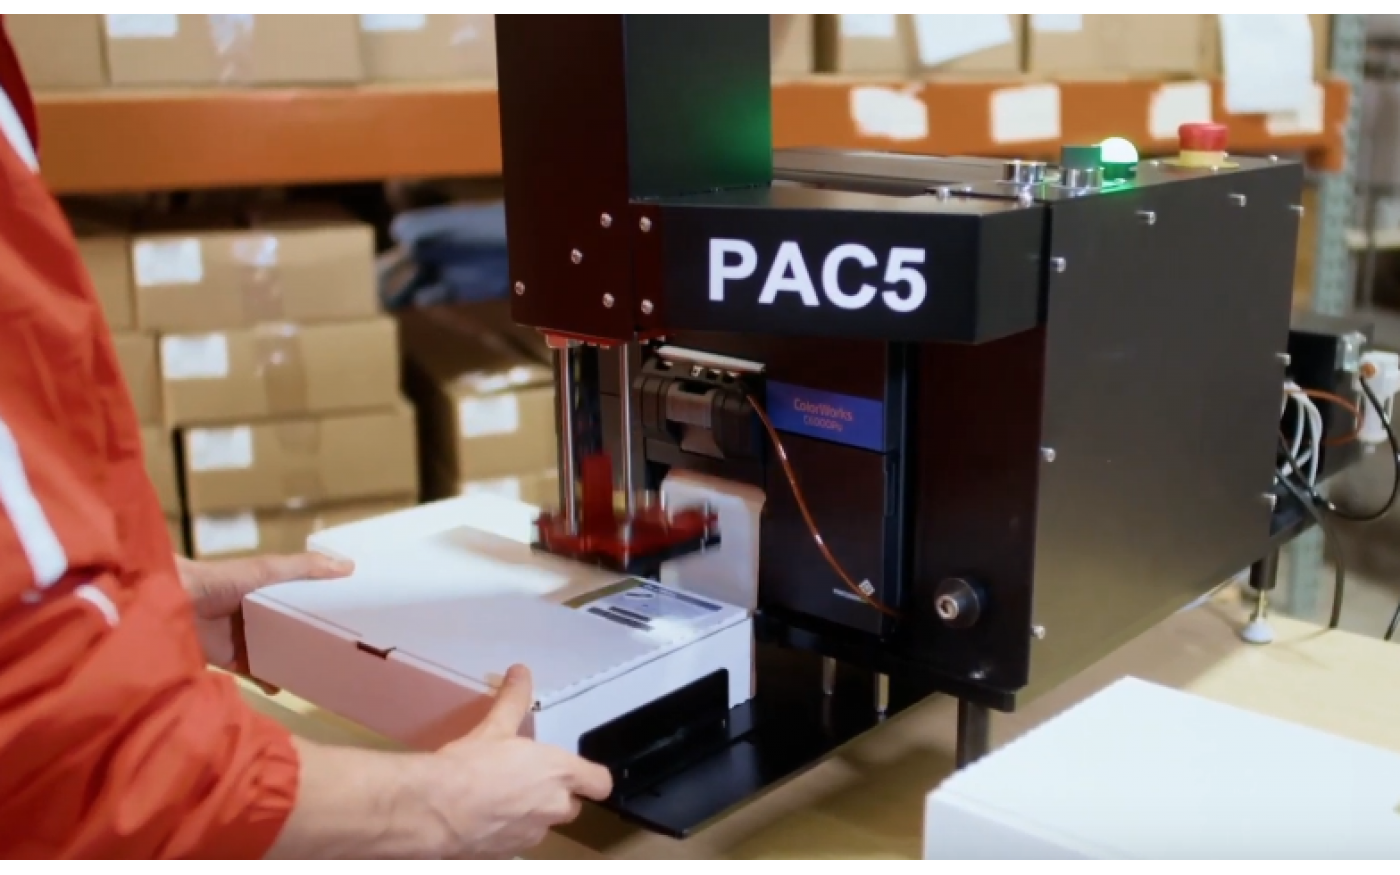 worker applying cannabis label to product using PAC5 label applicator